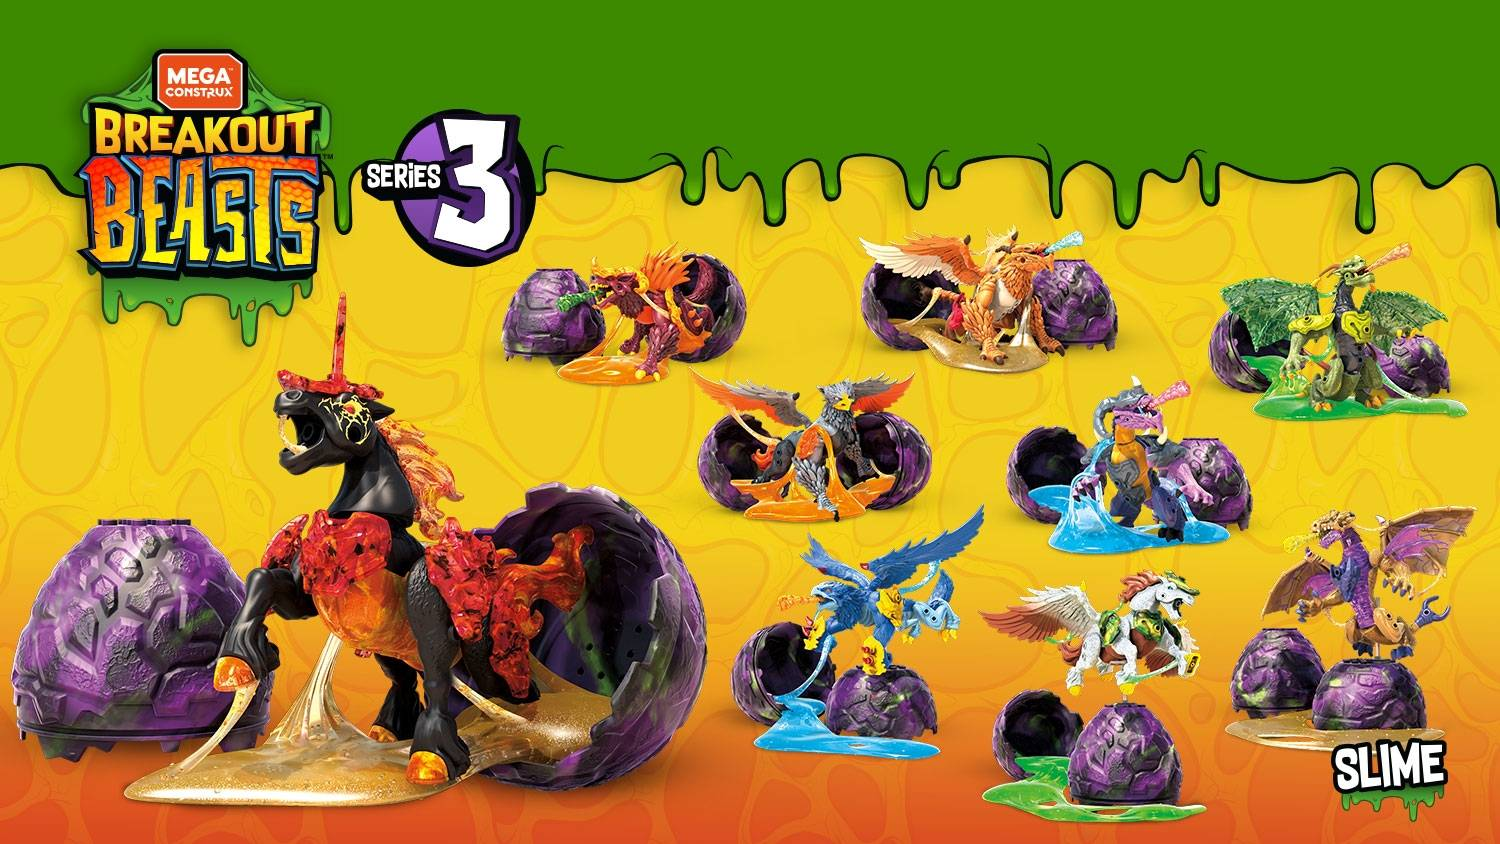 Mega Construx Breakout Beast and Crystal Creatures